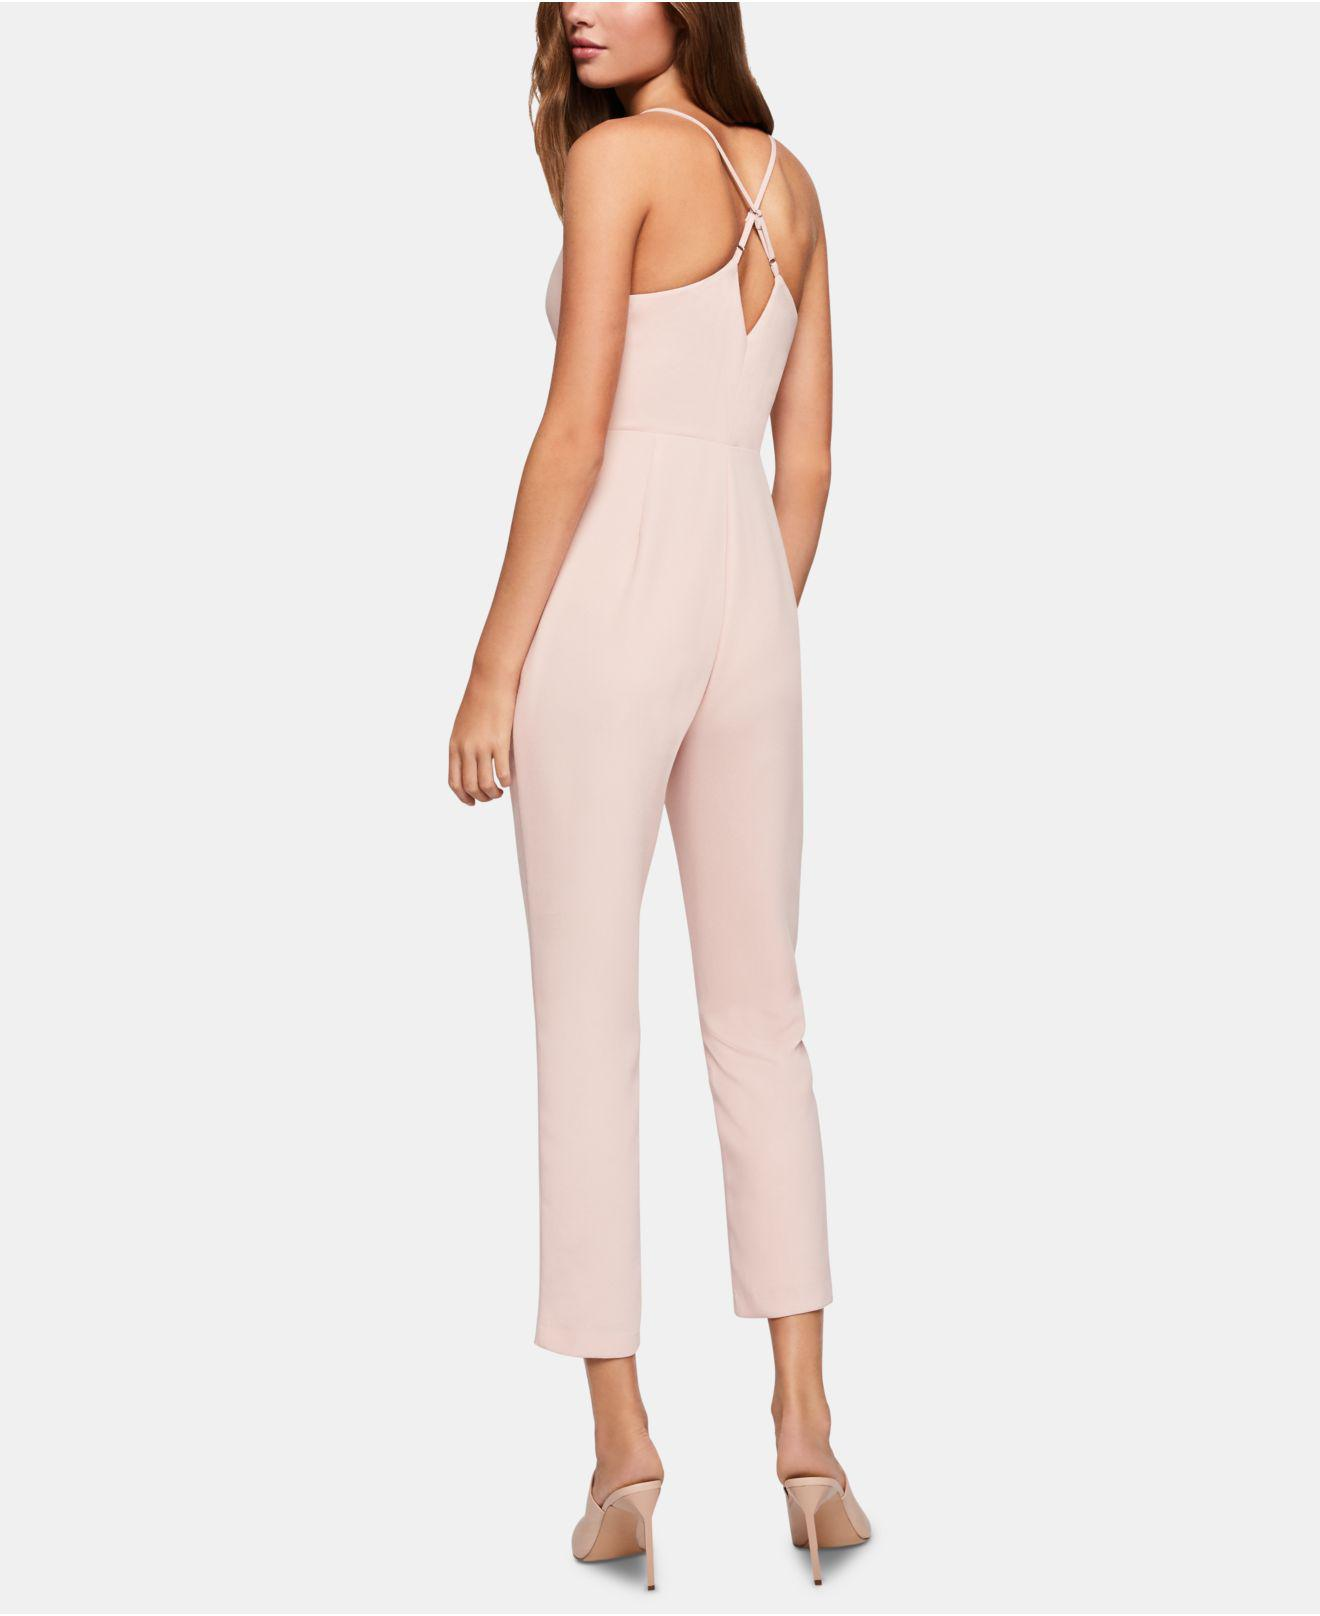 2b7cf0871c89 Lyst - BCBGeneration Surplice Cross-back Jumpsuit in Pink